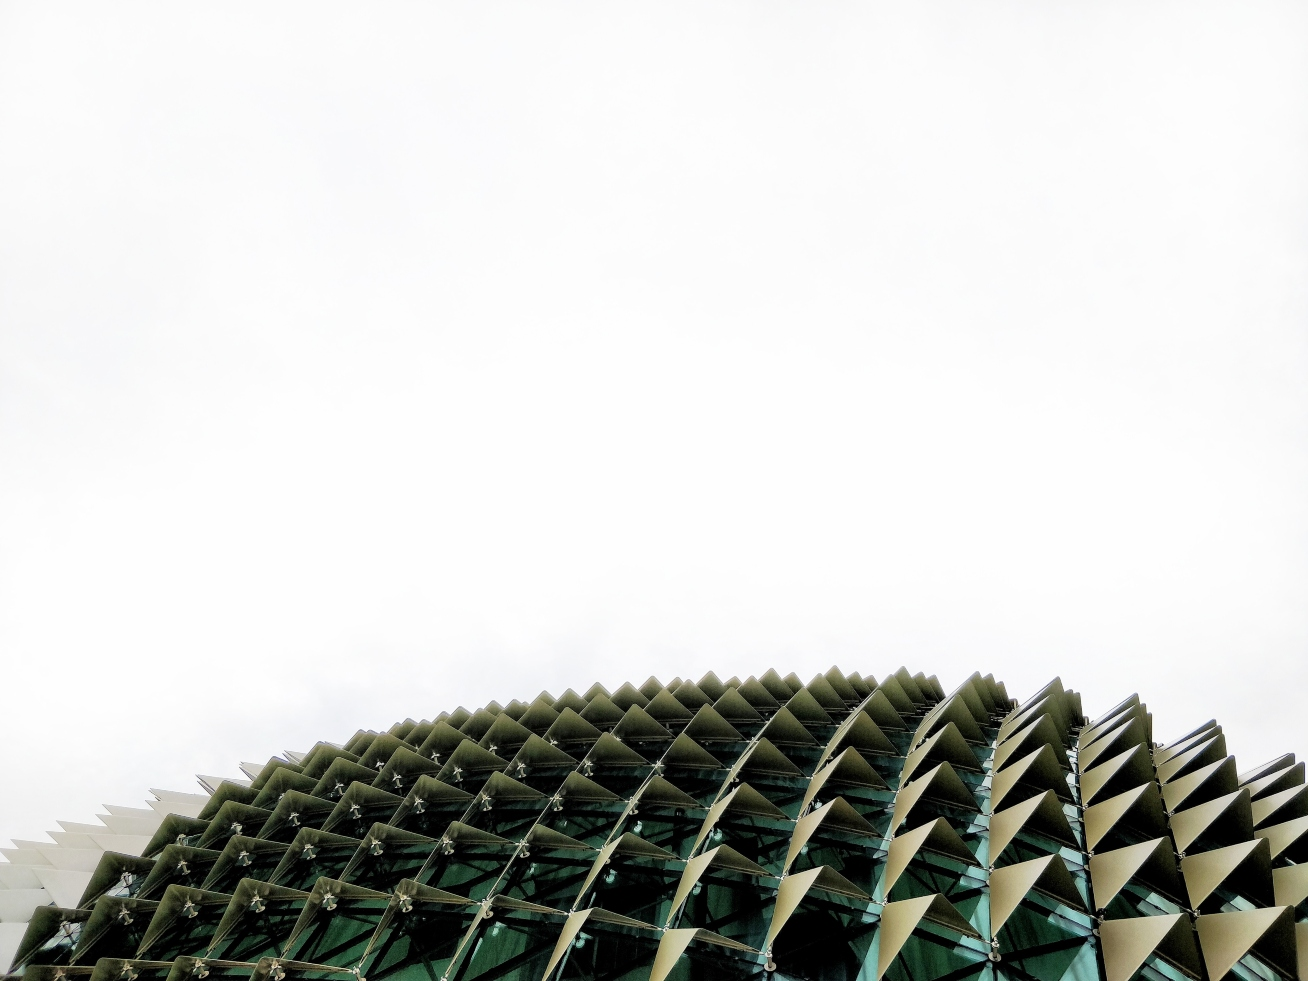 spikes-on-building